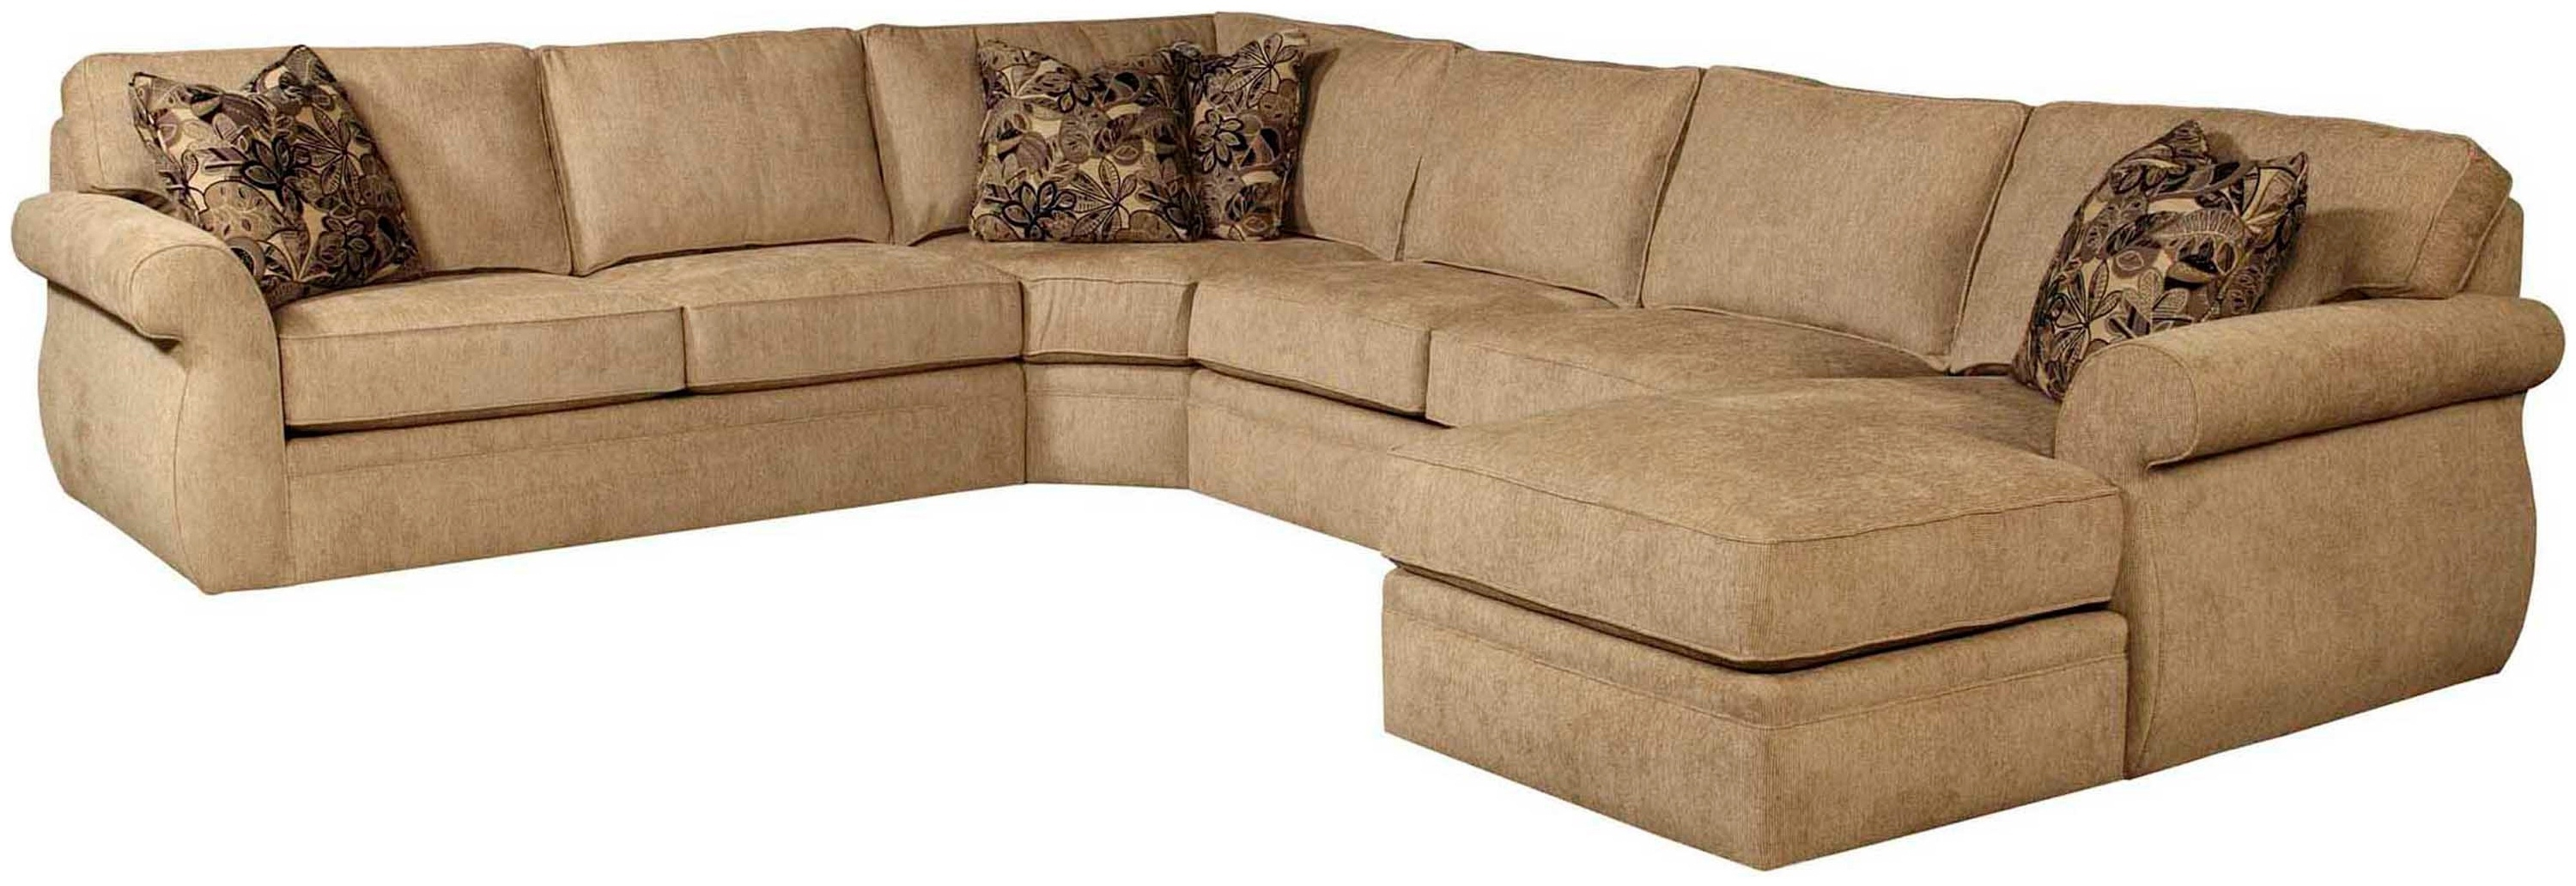 Favorite Furniture: Couch With Chaise Chaise Sectional Within Sectionals With Chaise (View 3 of 15)